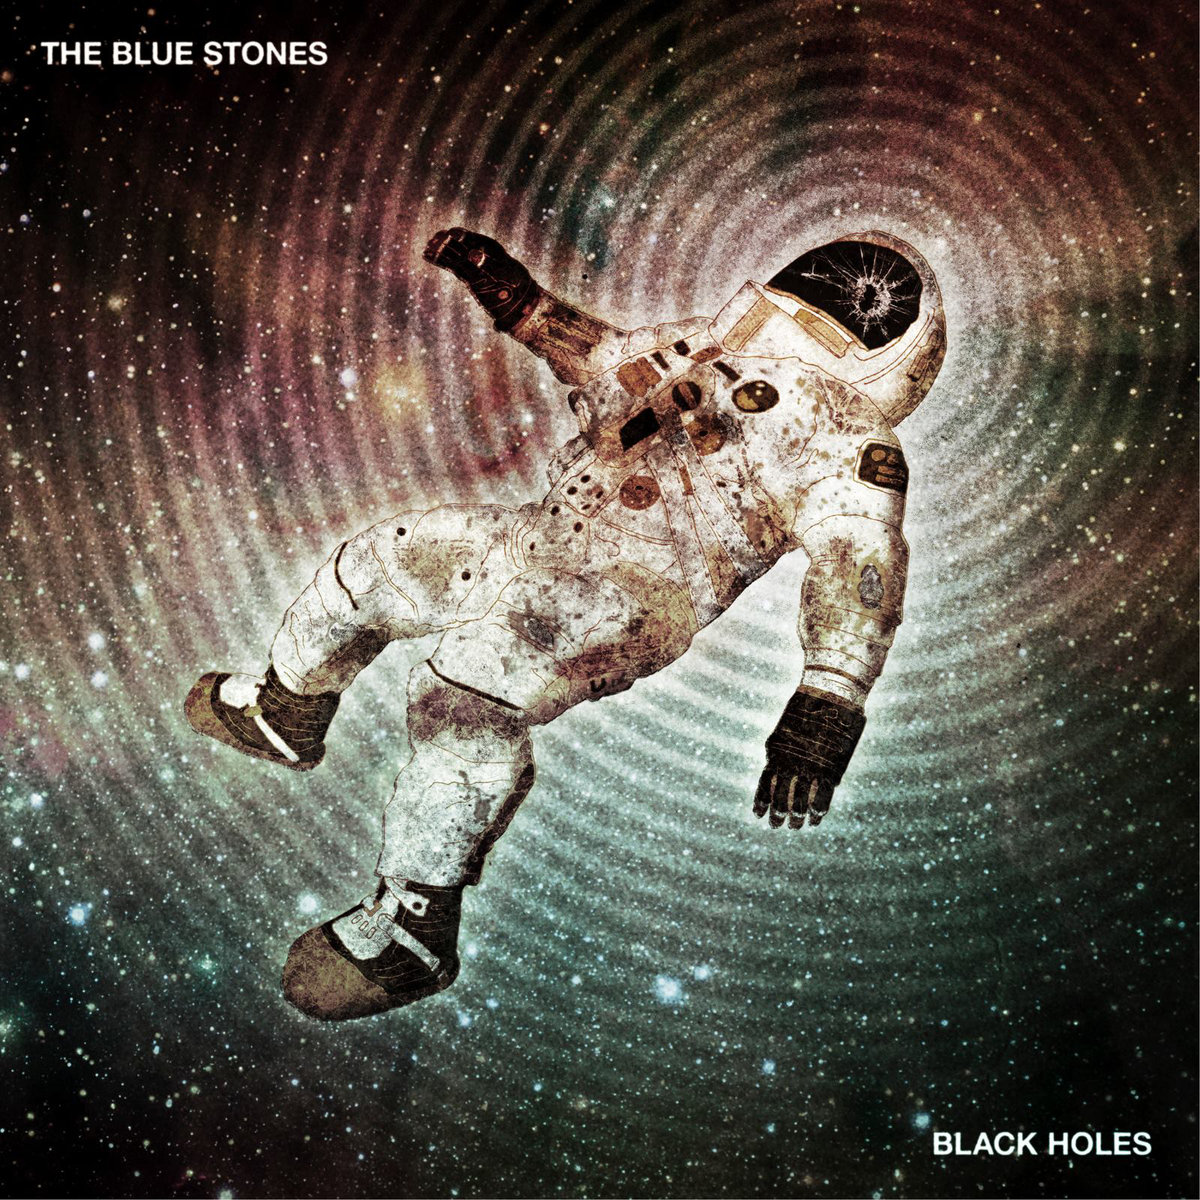 The Blue Stones - BLACK HOLES @ 'BLACK HOLES' album (alternative, blues)